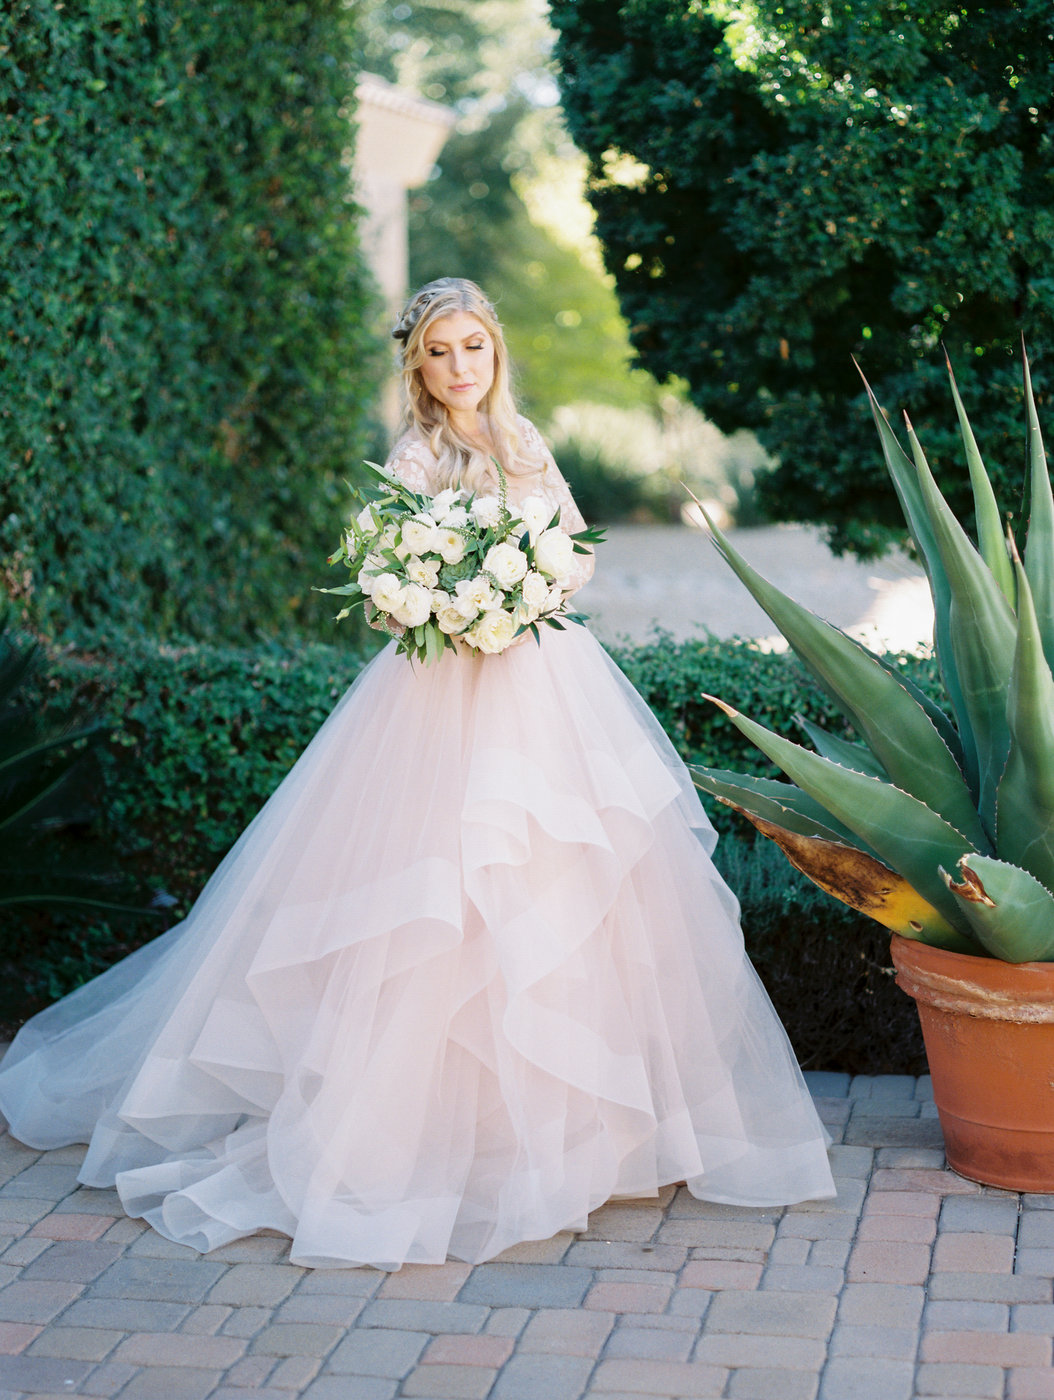 blush ball gown with ruffled skirt